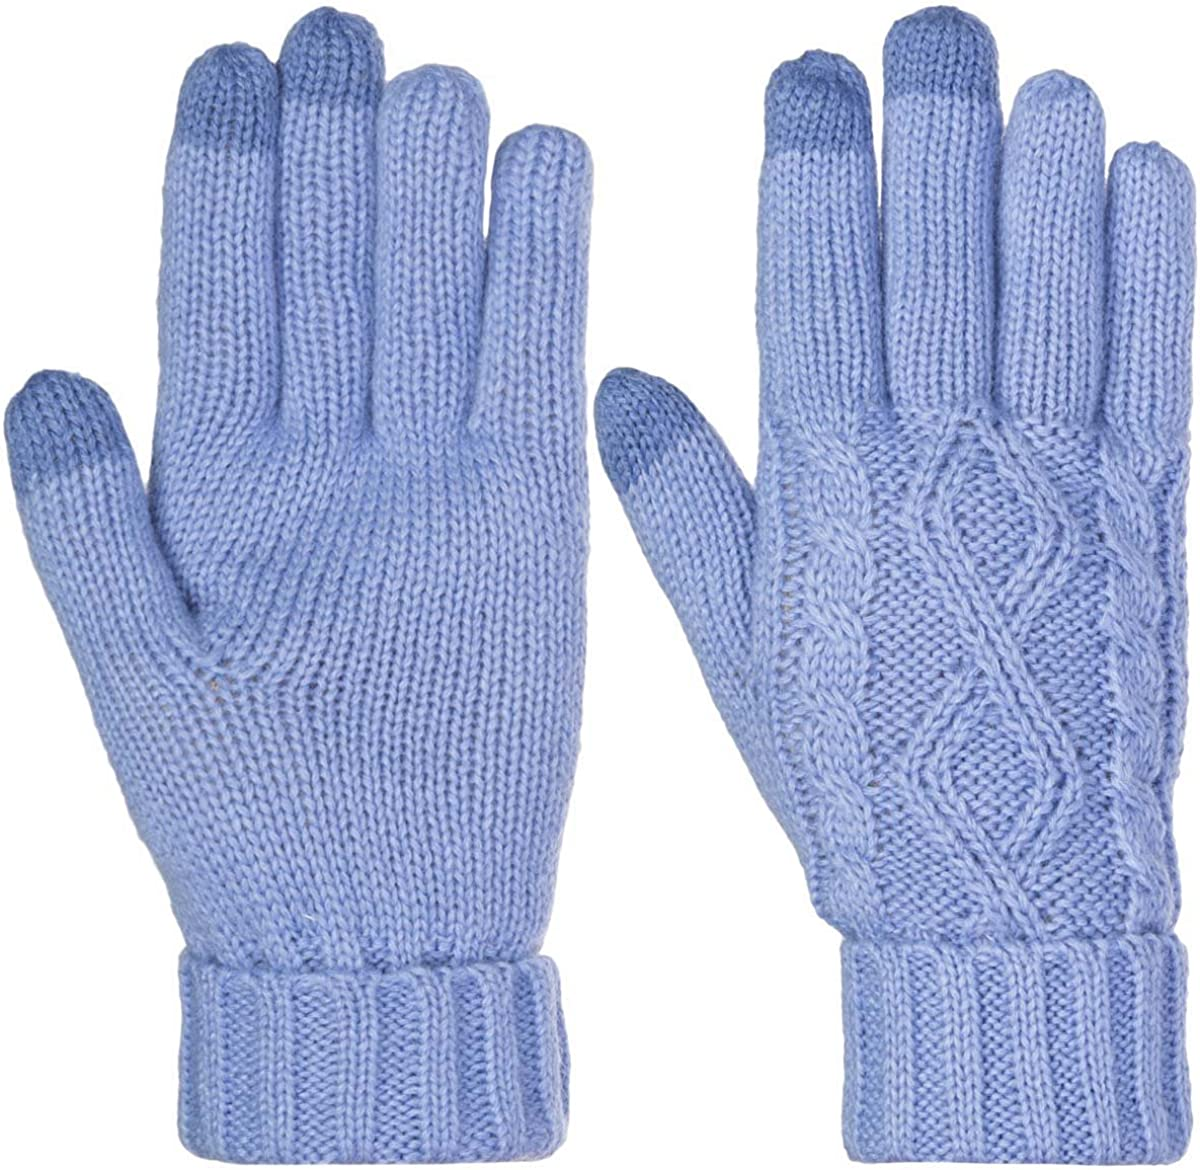 DG Hill Warm Cute Texting Gloves Touch Screen Gloves Knit Gloves Winter Gloves